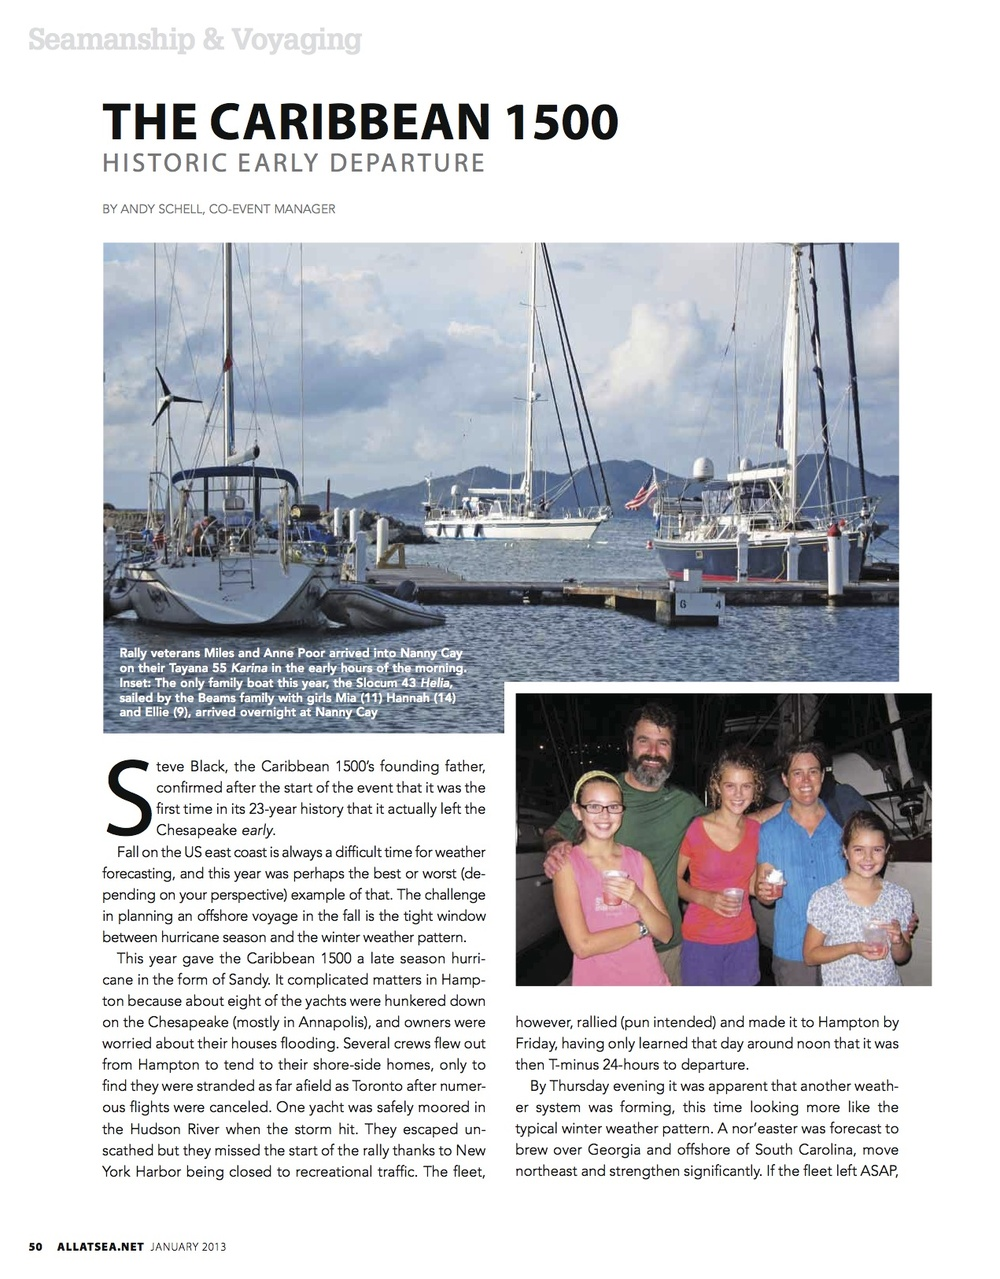 January 2013, Caribbean 1500 Early Departure